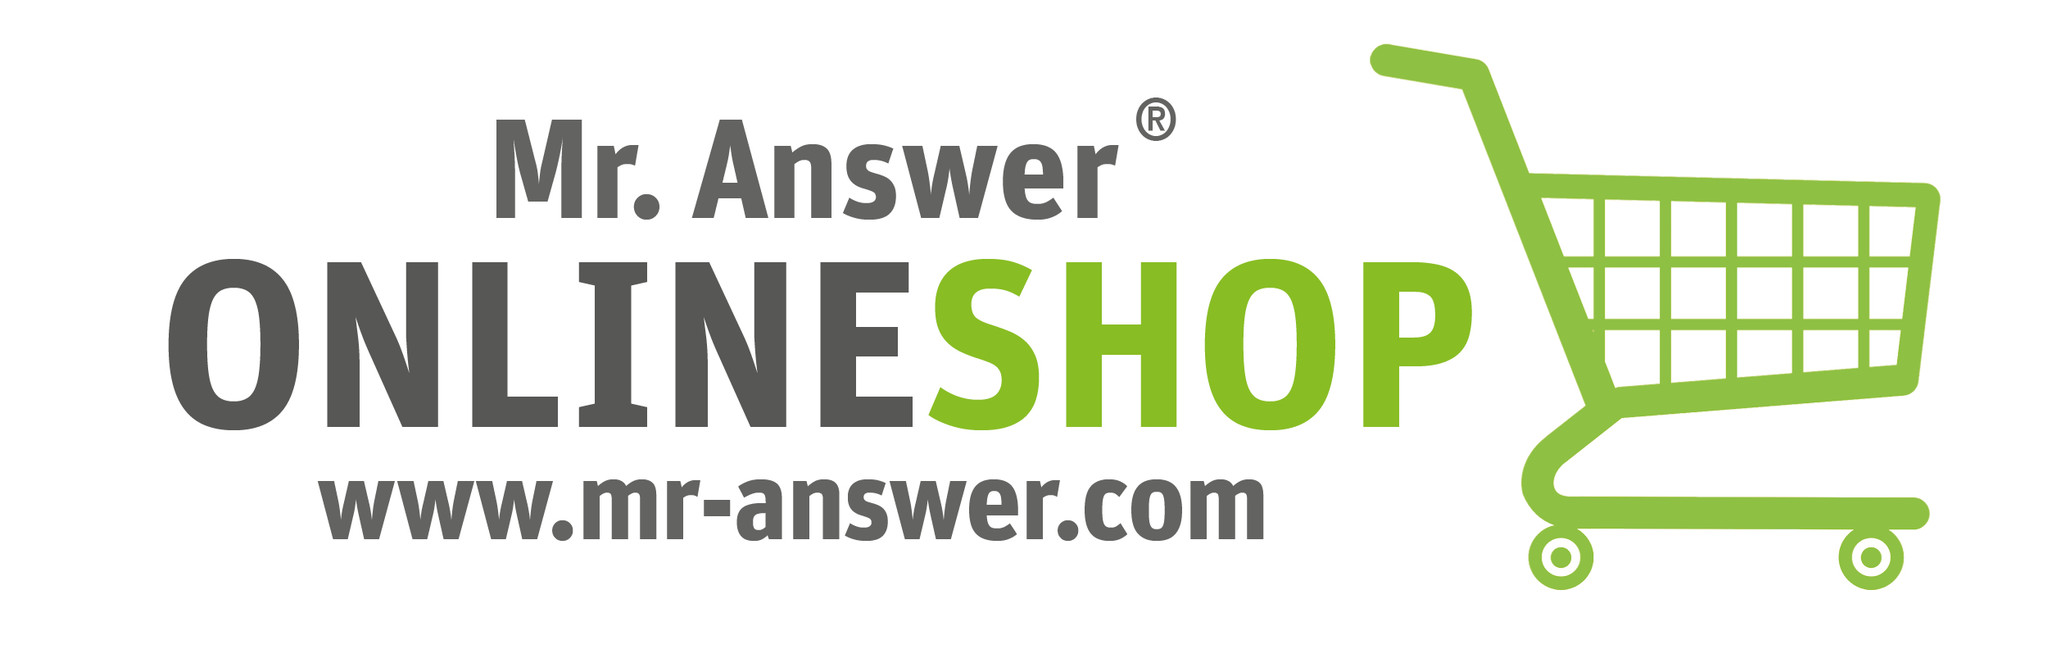 Zum Mr. Answer Online-Shop